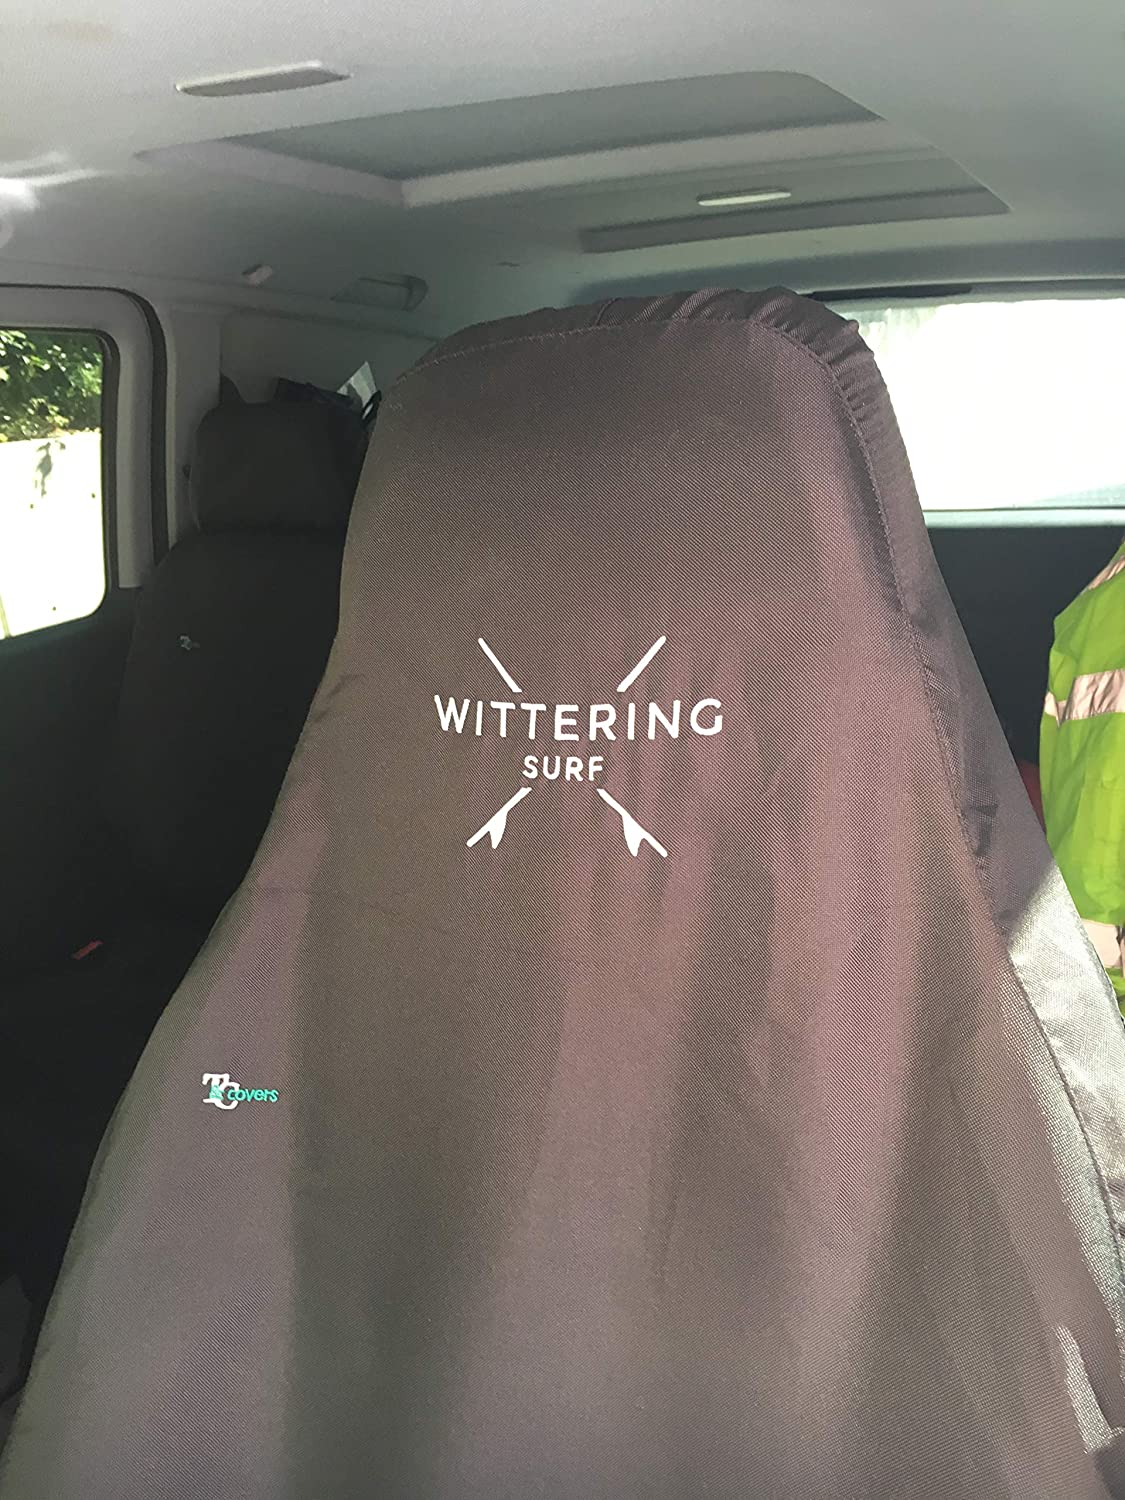 Drivers Seat Heavy Duty /& Waterproof Black Town /& Country Covers Universal 3D Airbag Compatible Seat Cover with Wittering Surf Branding